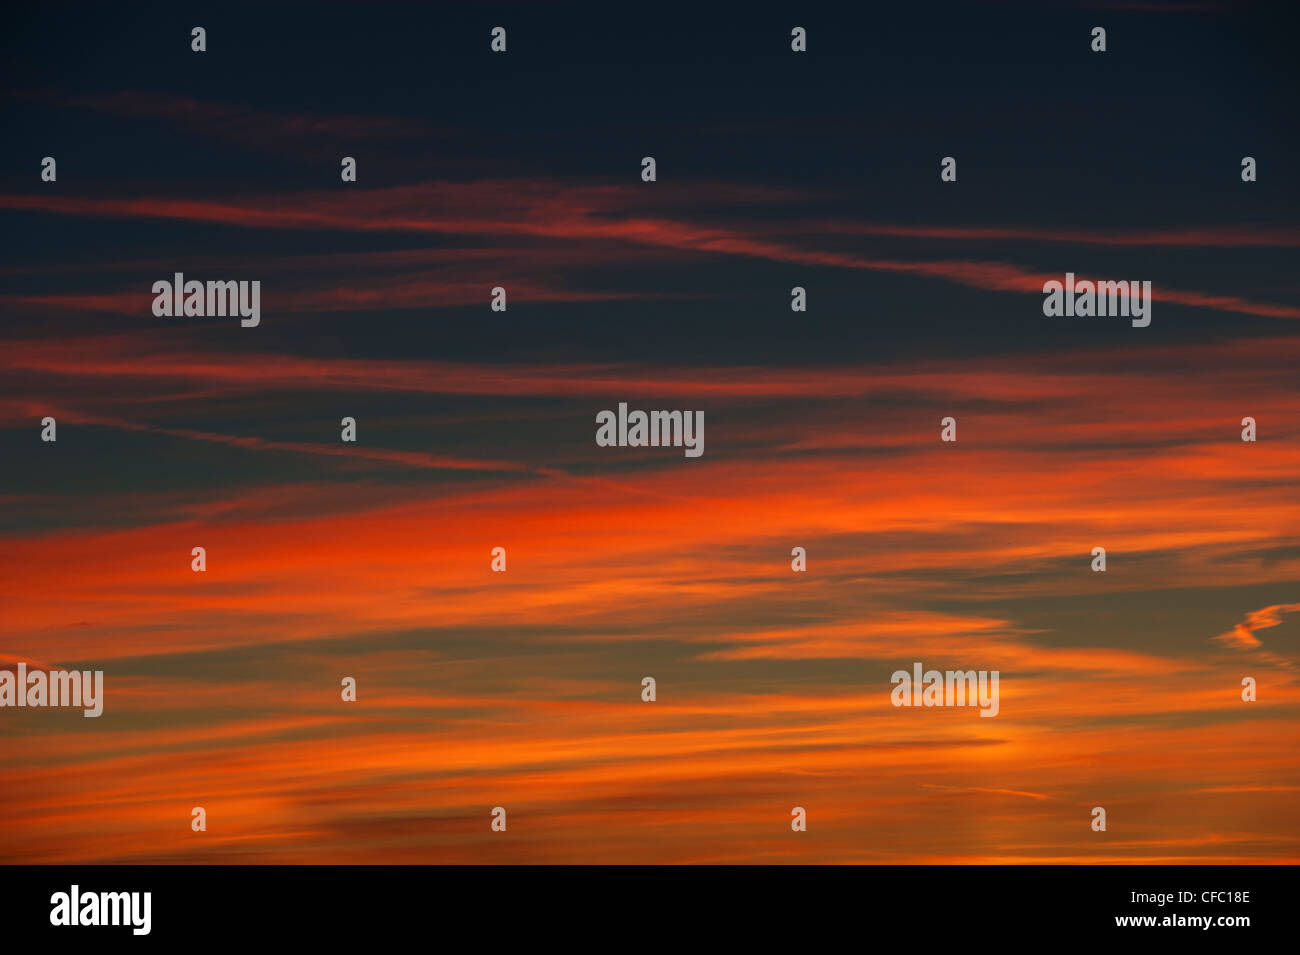 afterglow, sunset glow, red sunset, red evening sky, Emmental, empyrean, sky, canton Bern, Switzerland, sunset, - Stock Image